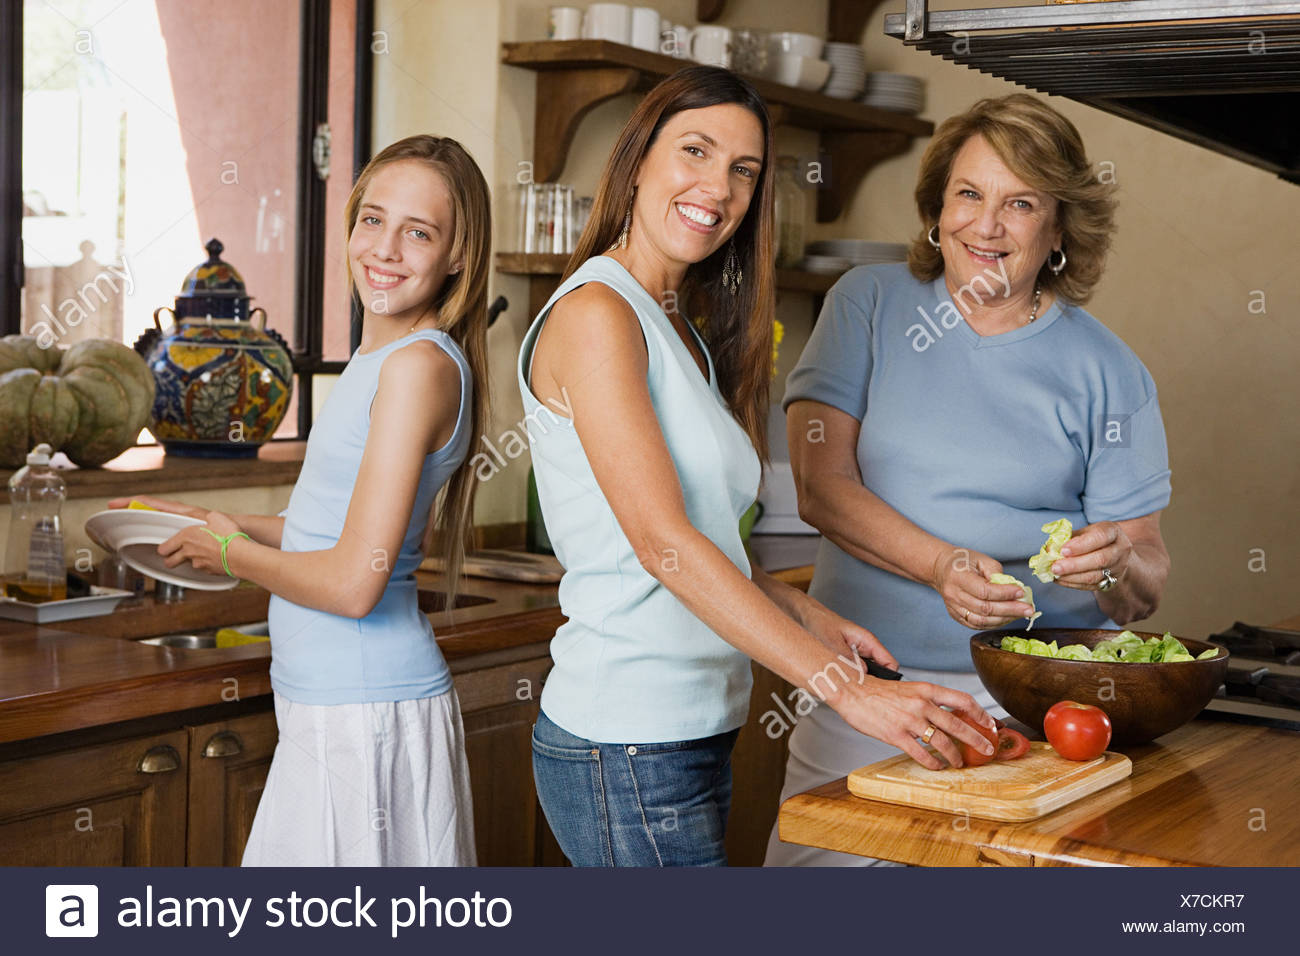 Female members of a family preparing a salad - Stock Image